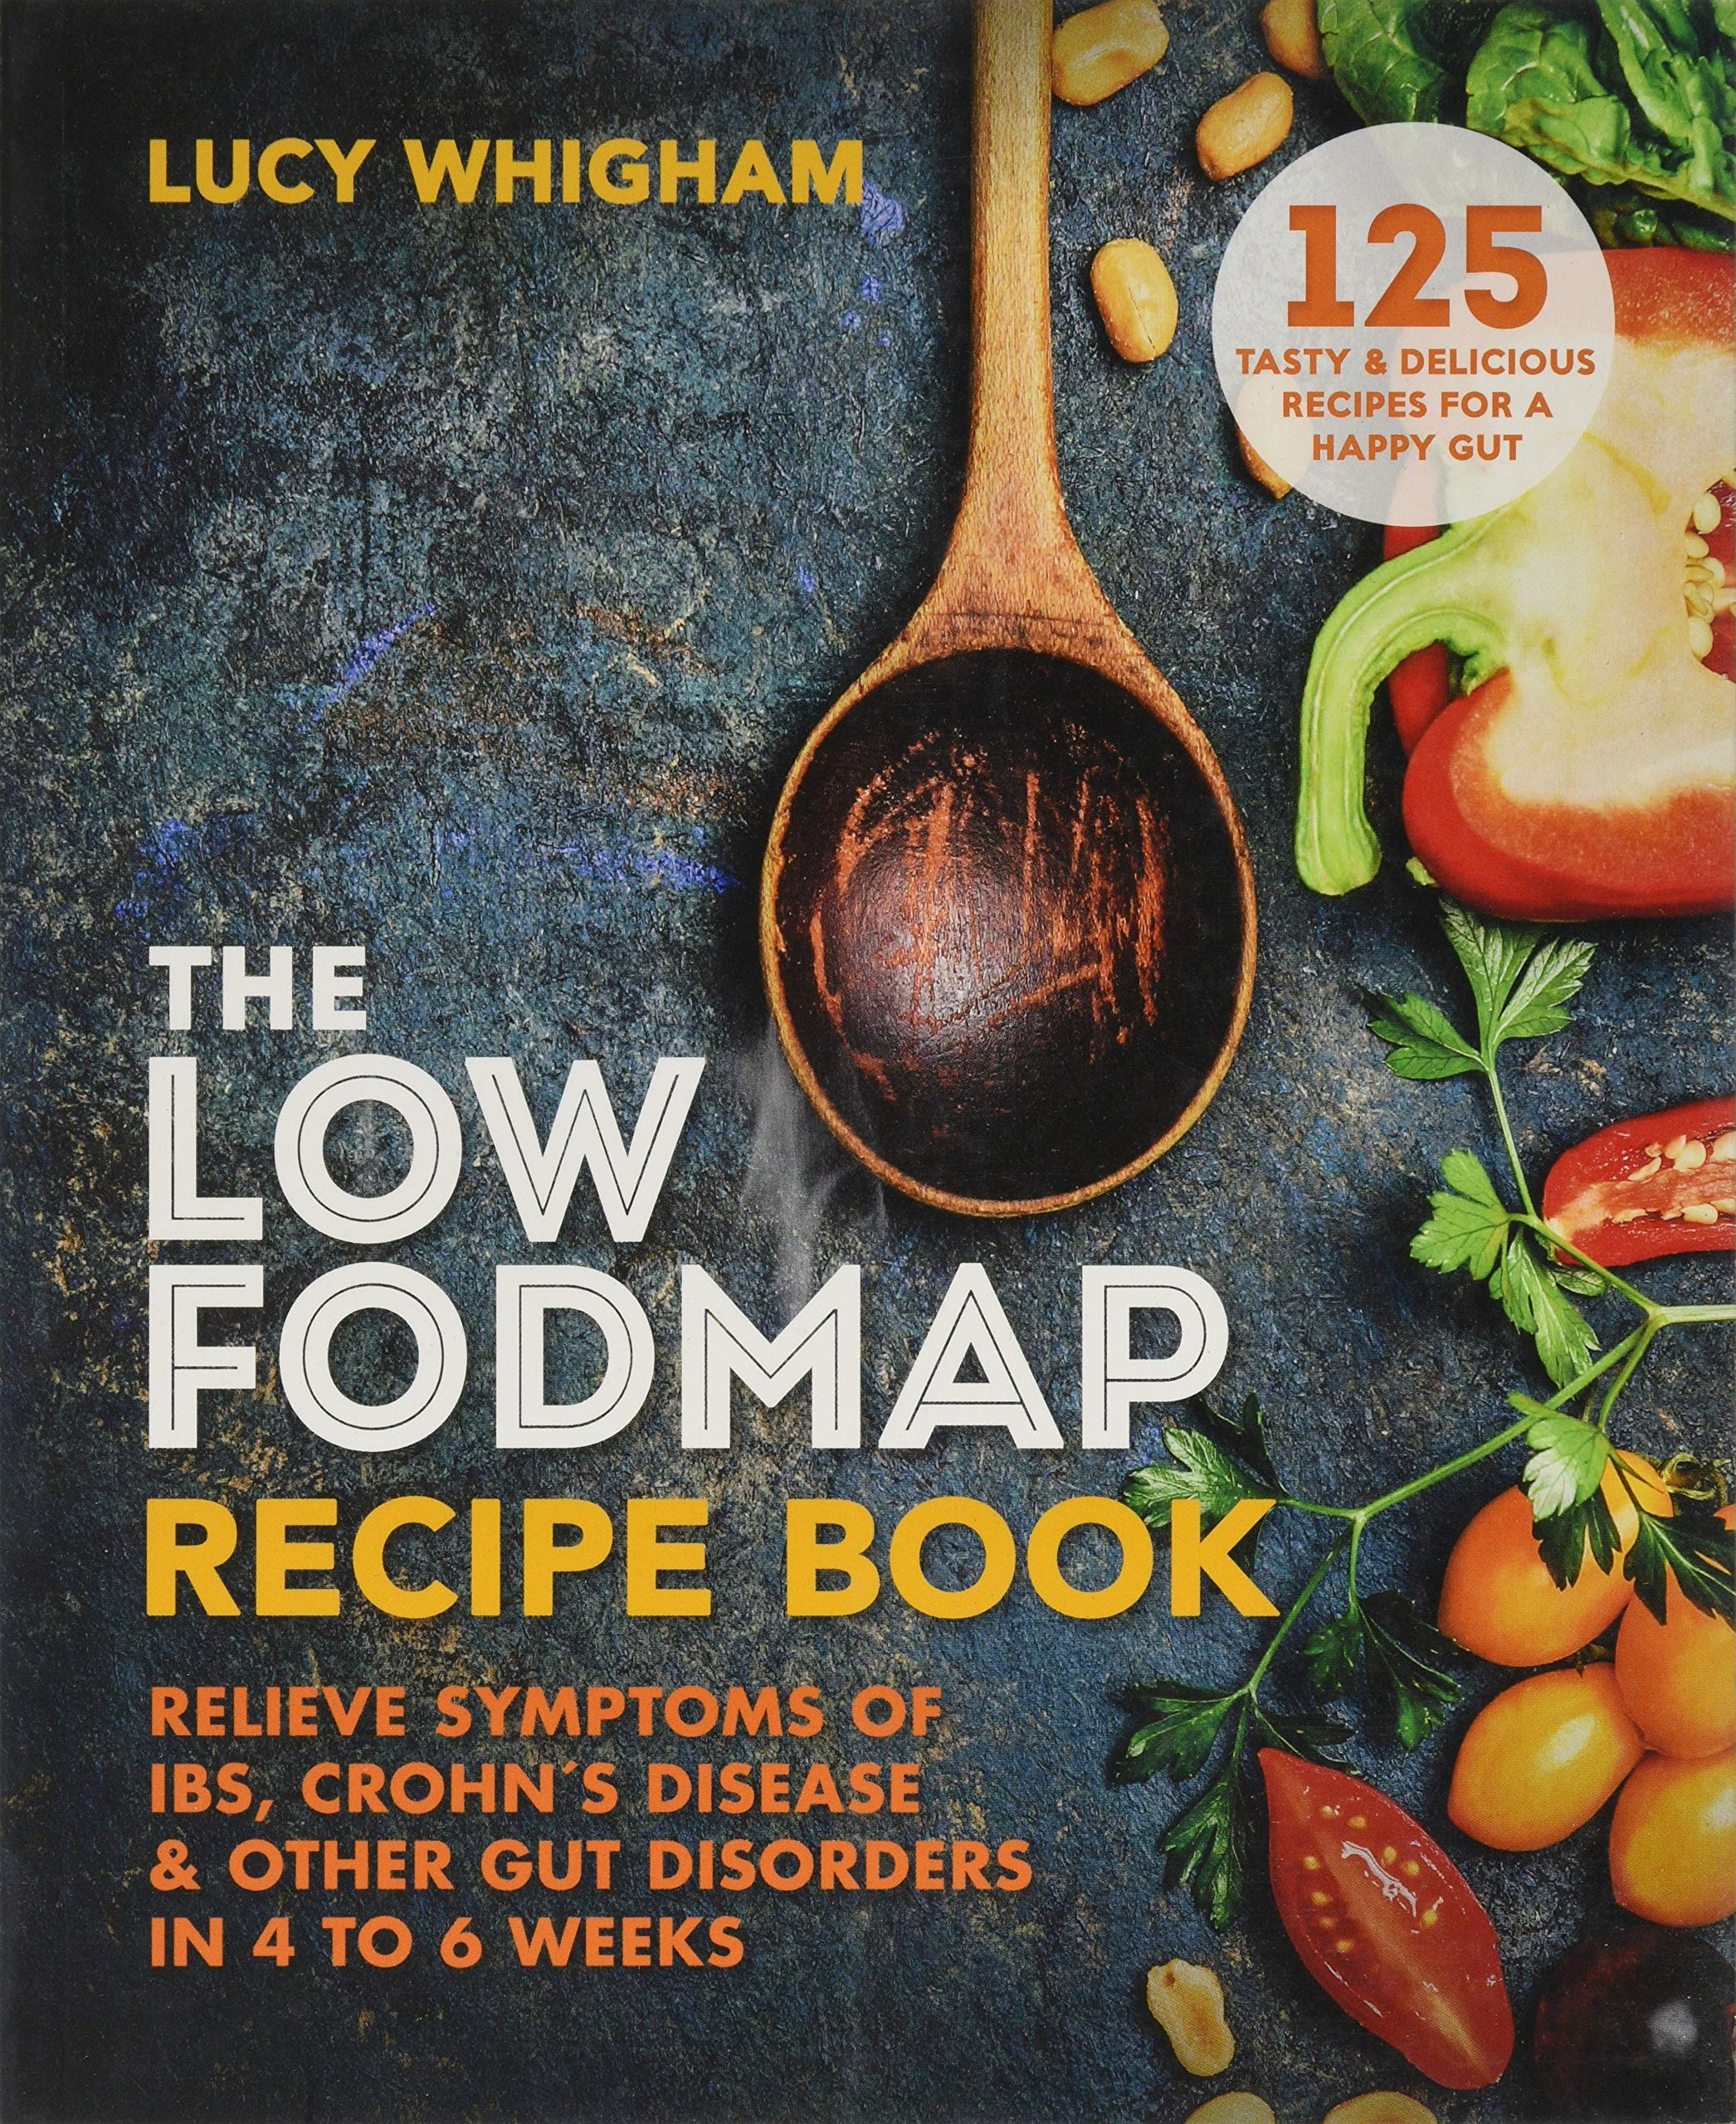 can one follow fodmap diet for crohns